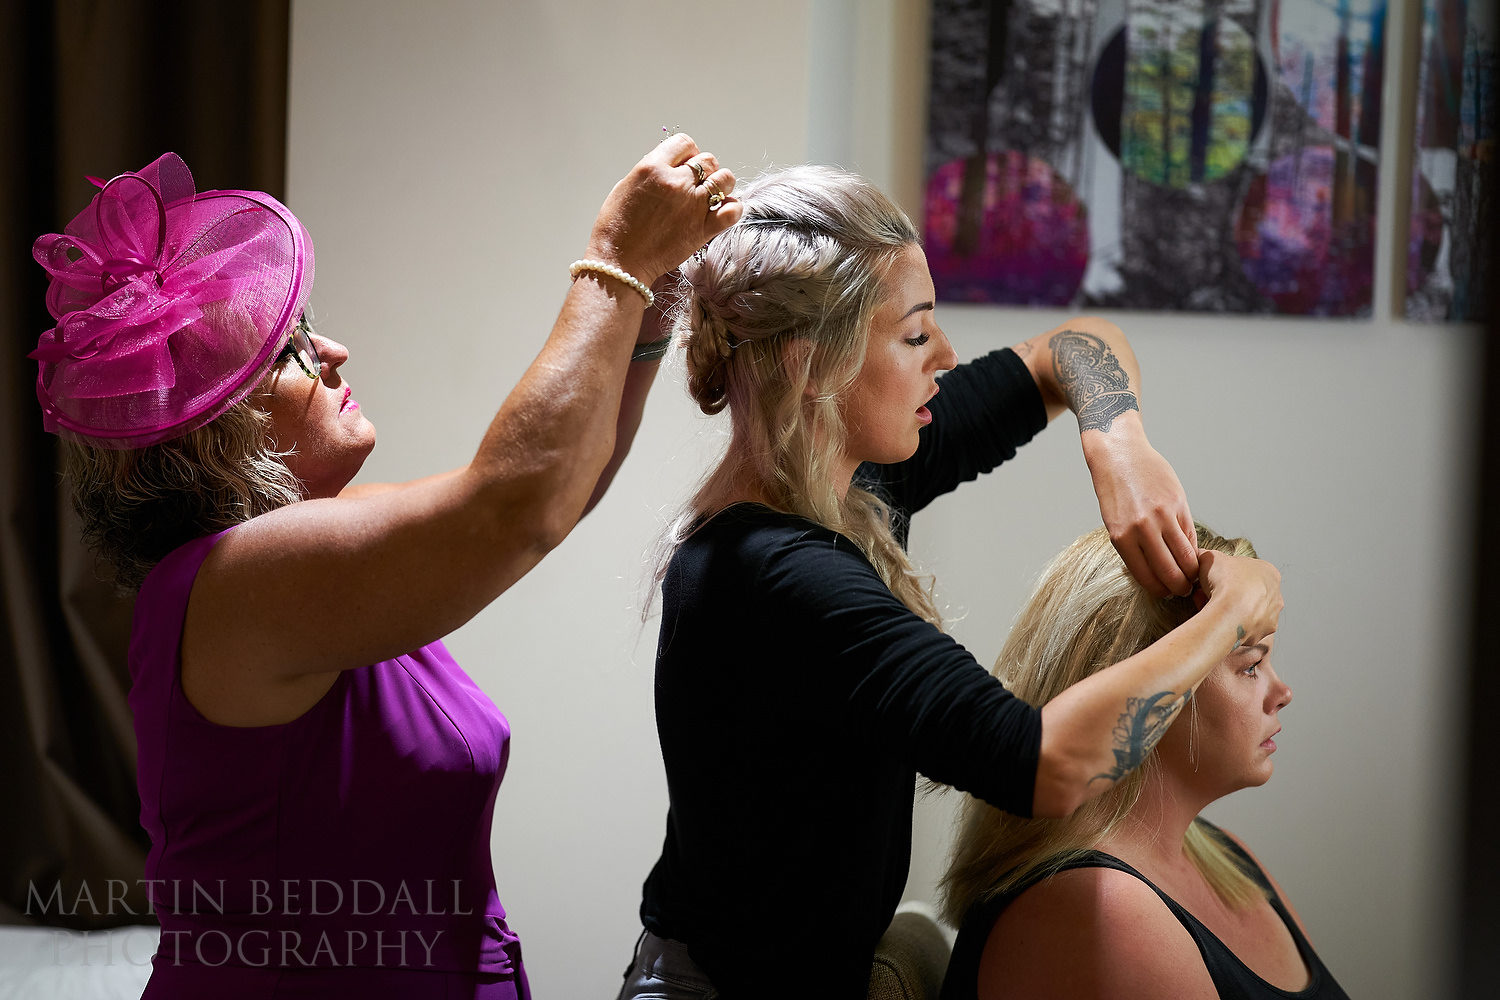 Mum adjusts bride's hair, bride adjusts the bridesmaid's hair